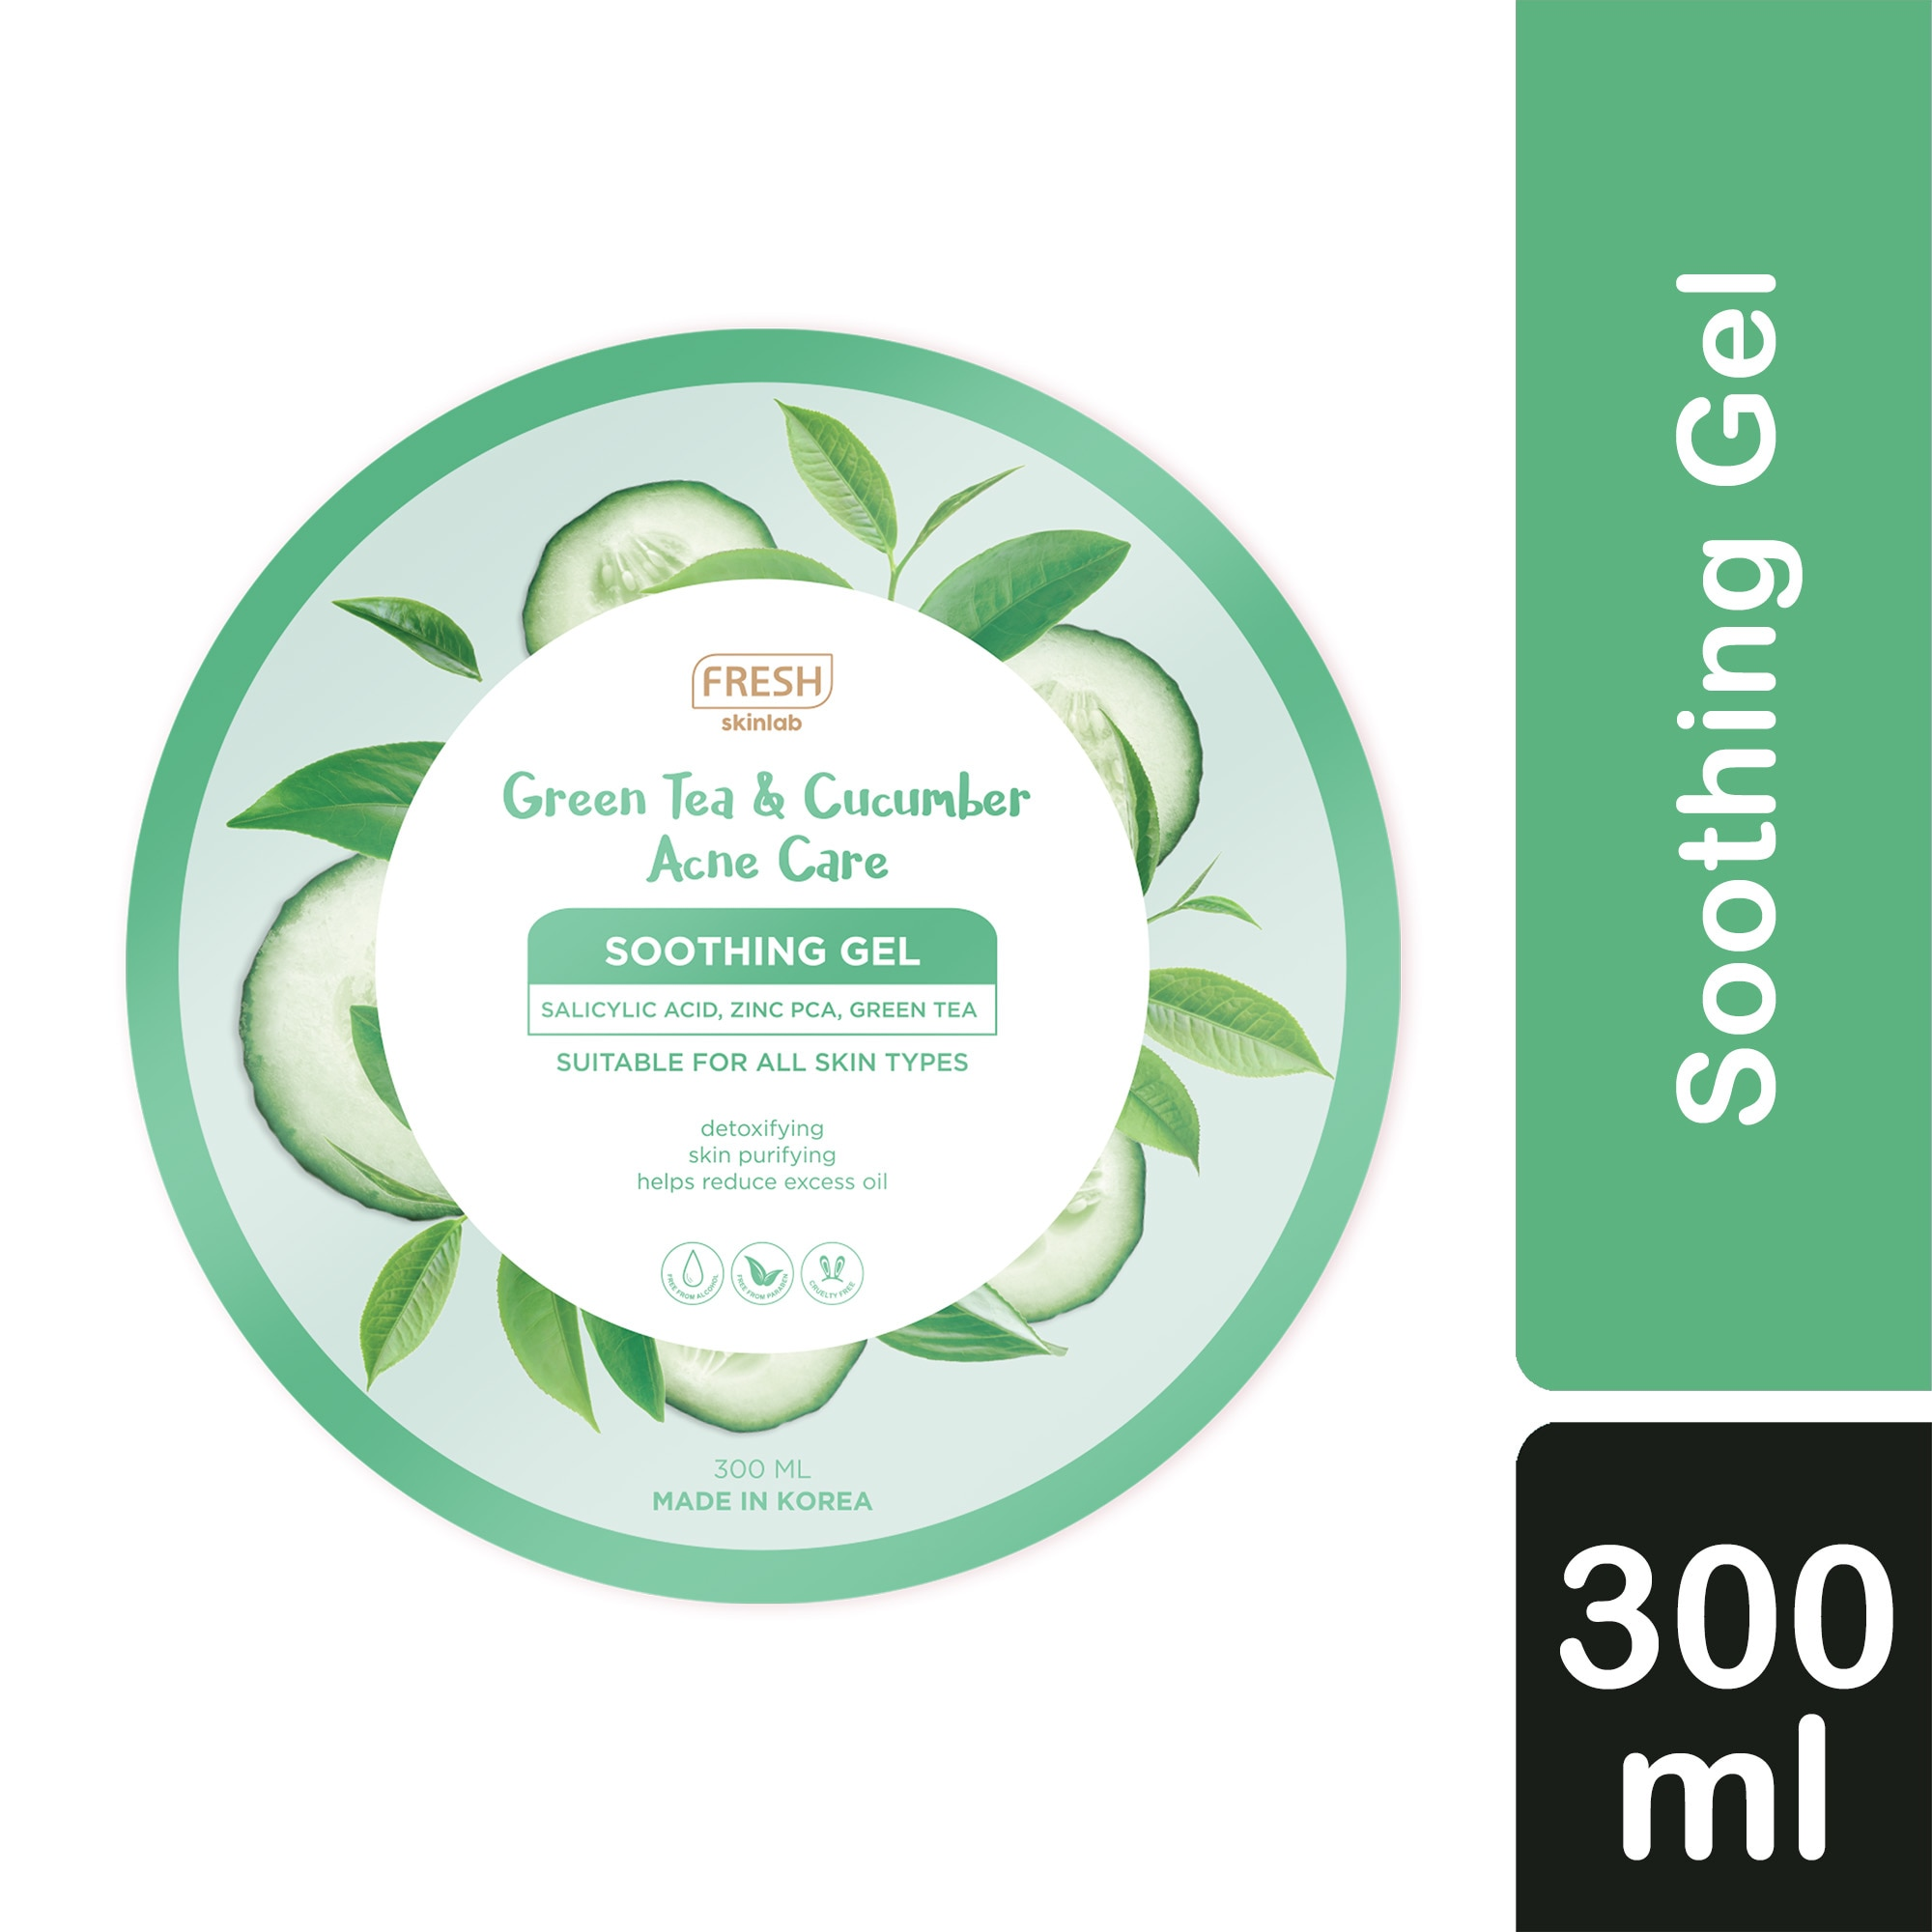 FRESHSkinlab Green Tea and Cucumber Acne Care Soothing Gel 300ml,For WomenSummer Glow